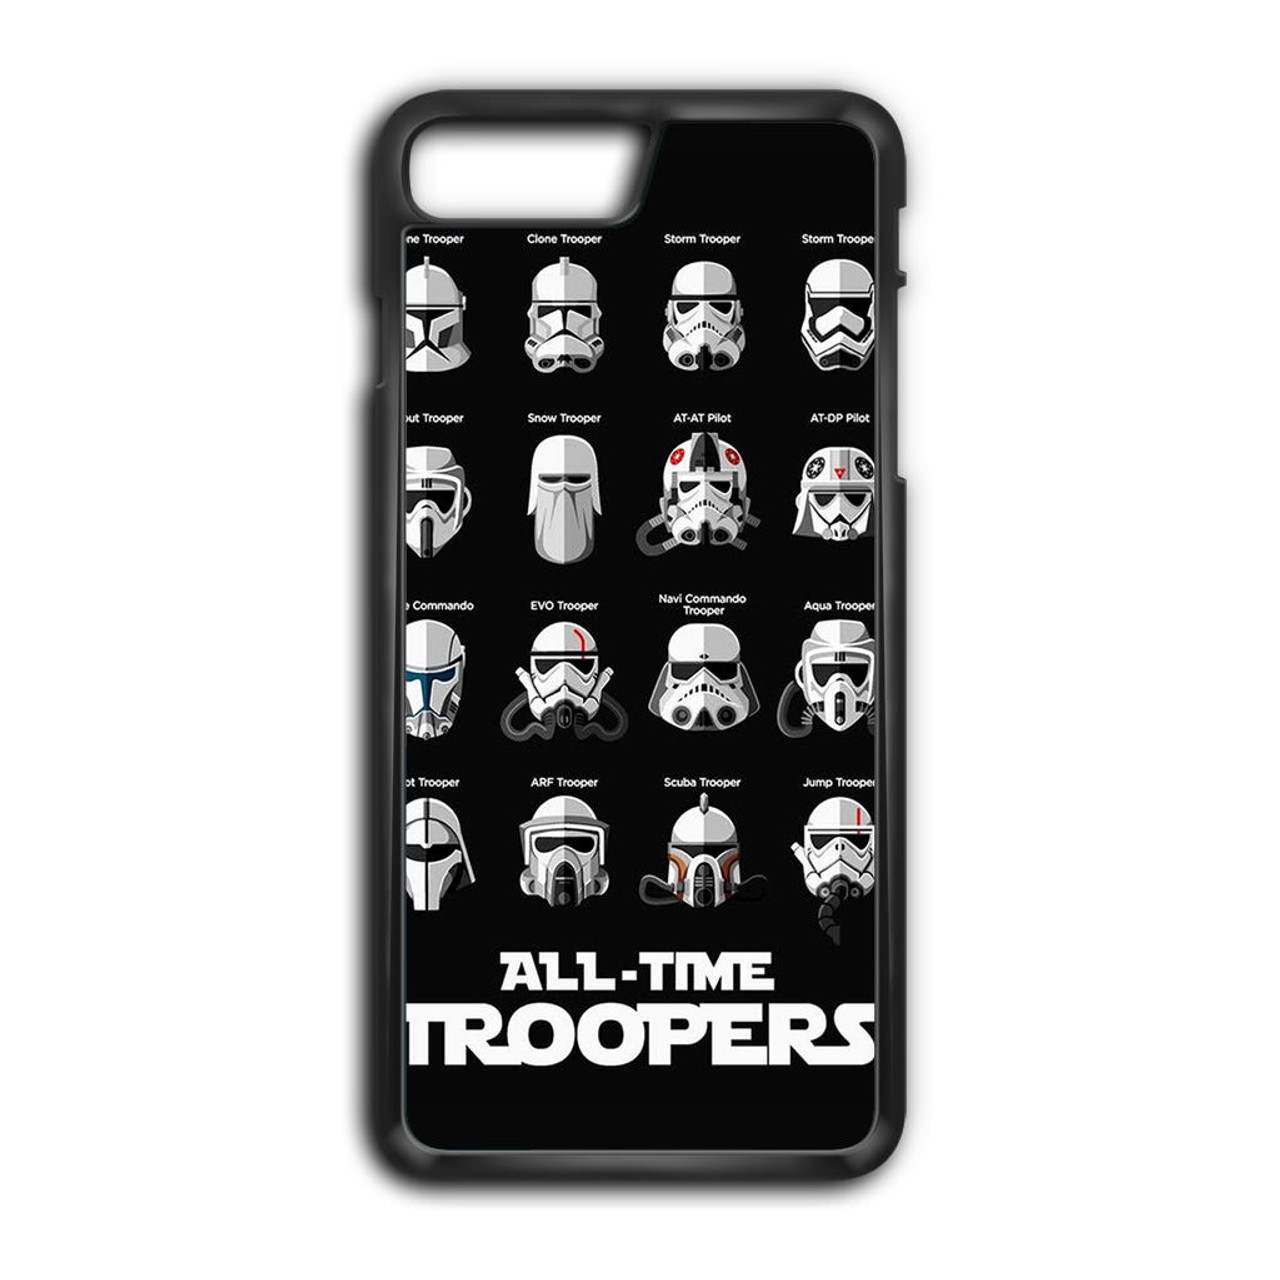 iphone 7 star wars case